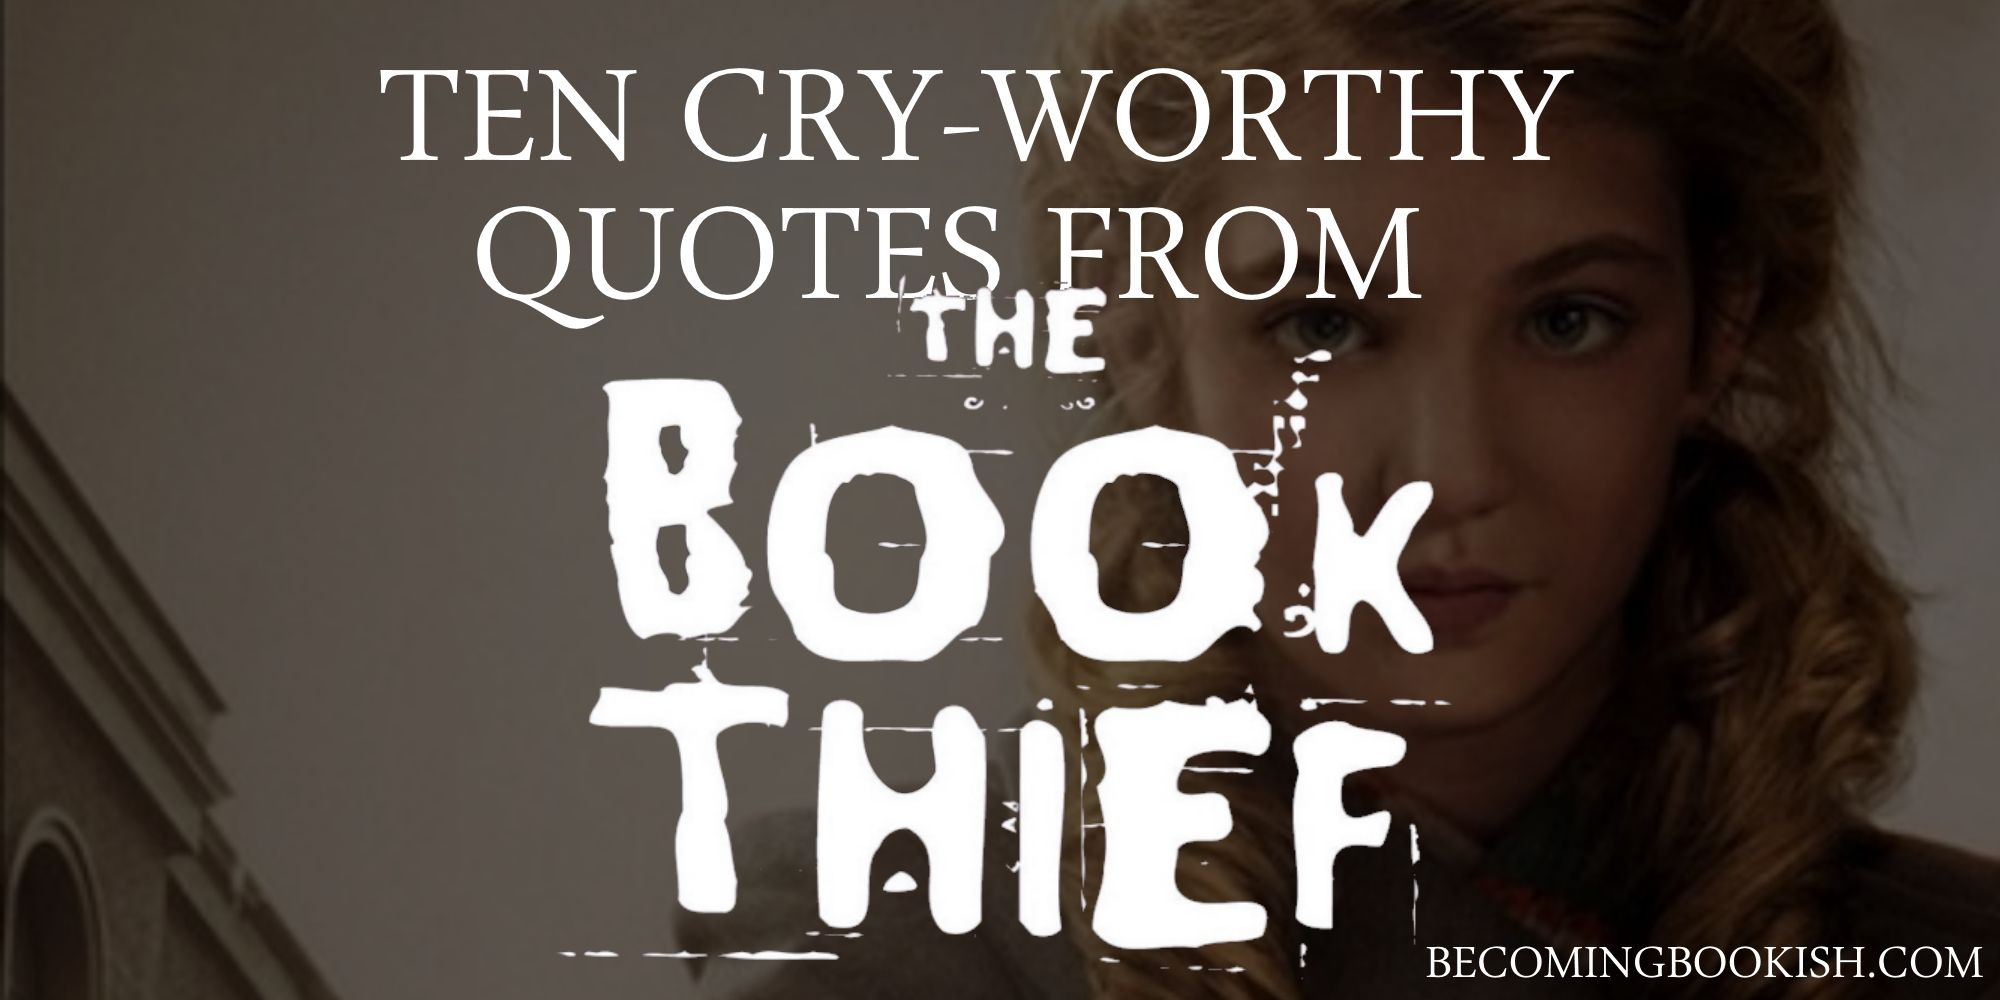 The Book Thief Quotes Cryworthy Quotes From The Book Thief